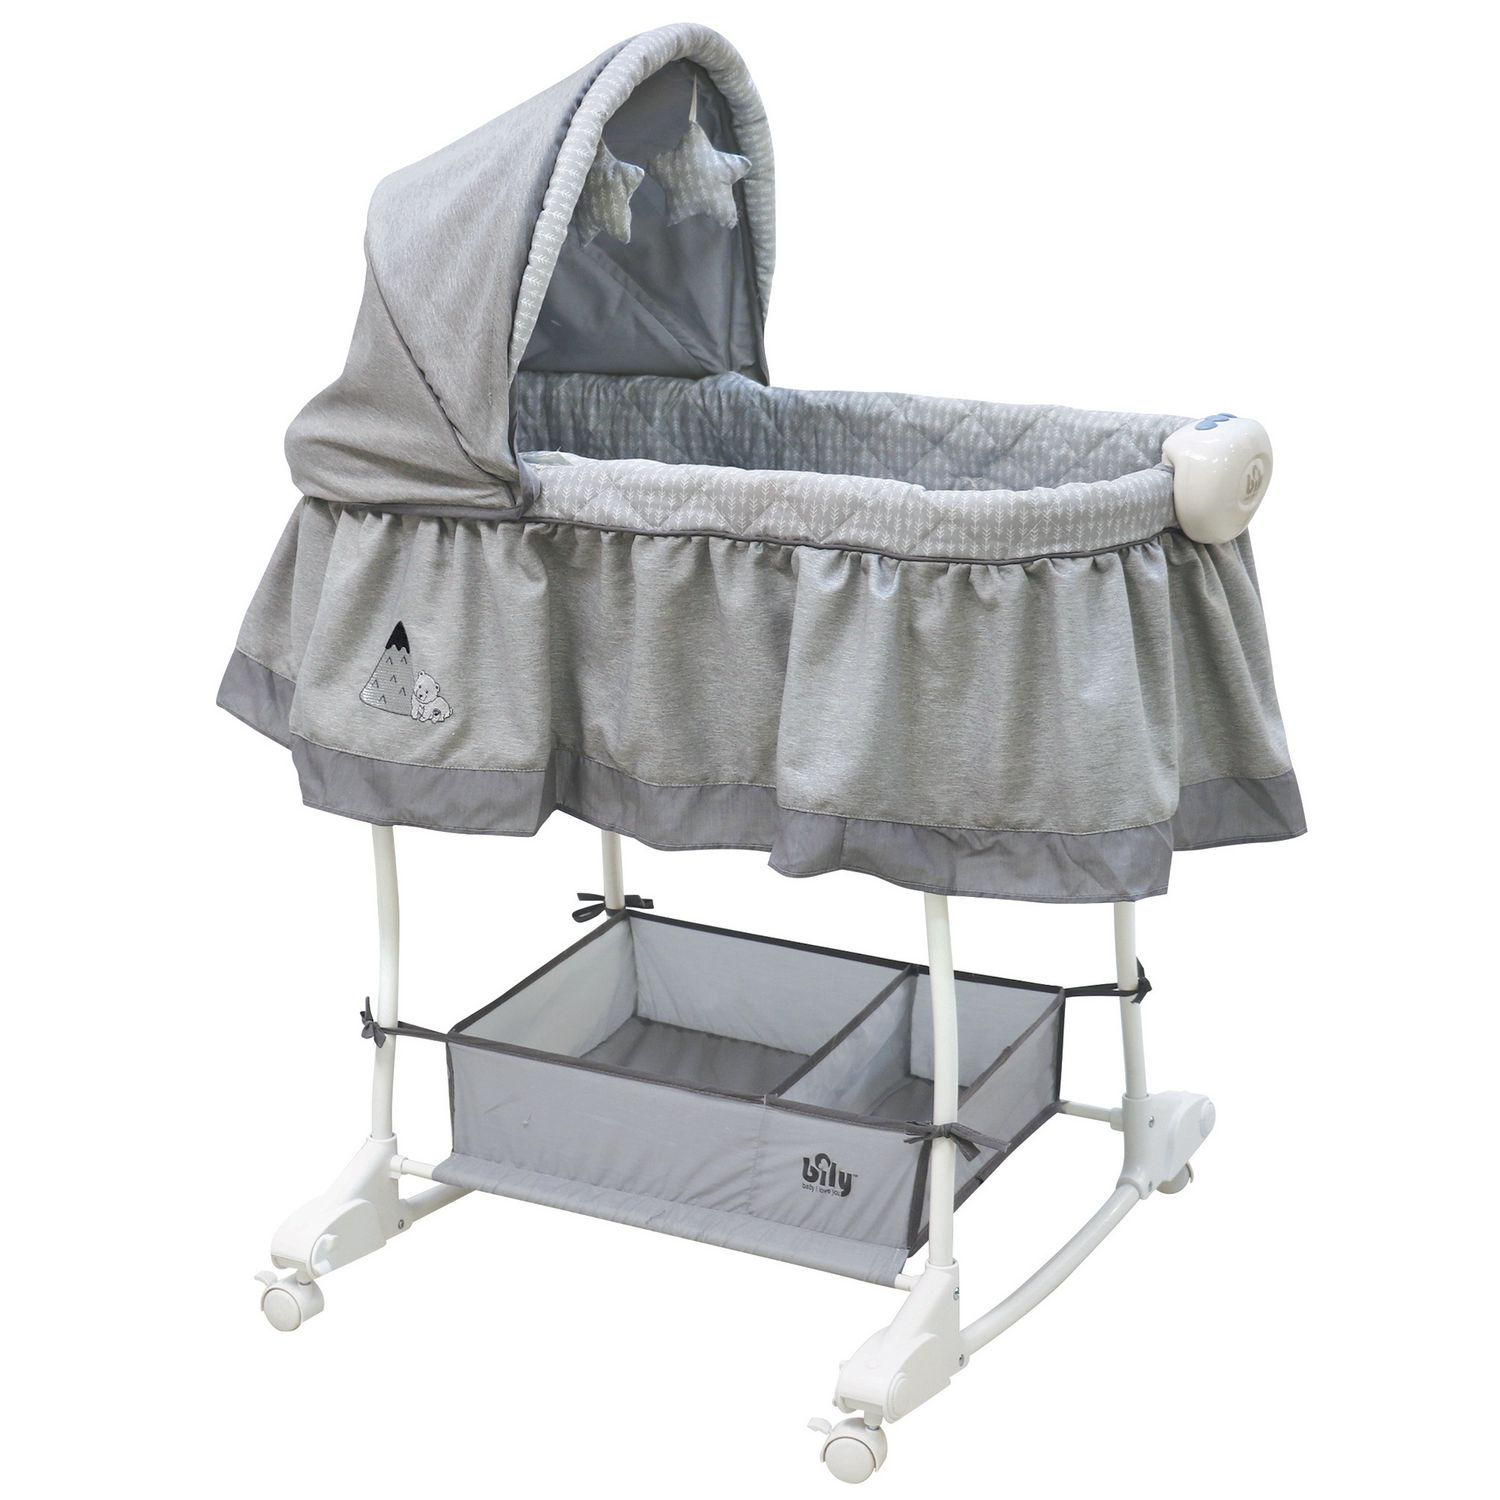 Bily Rocking Bassinet — Best Budget Bassinet